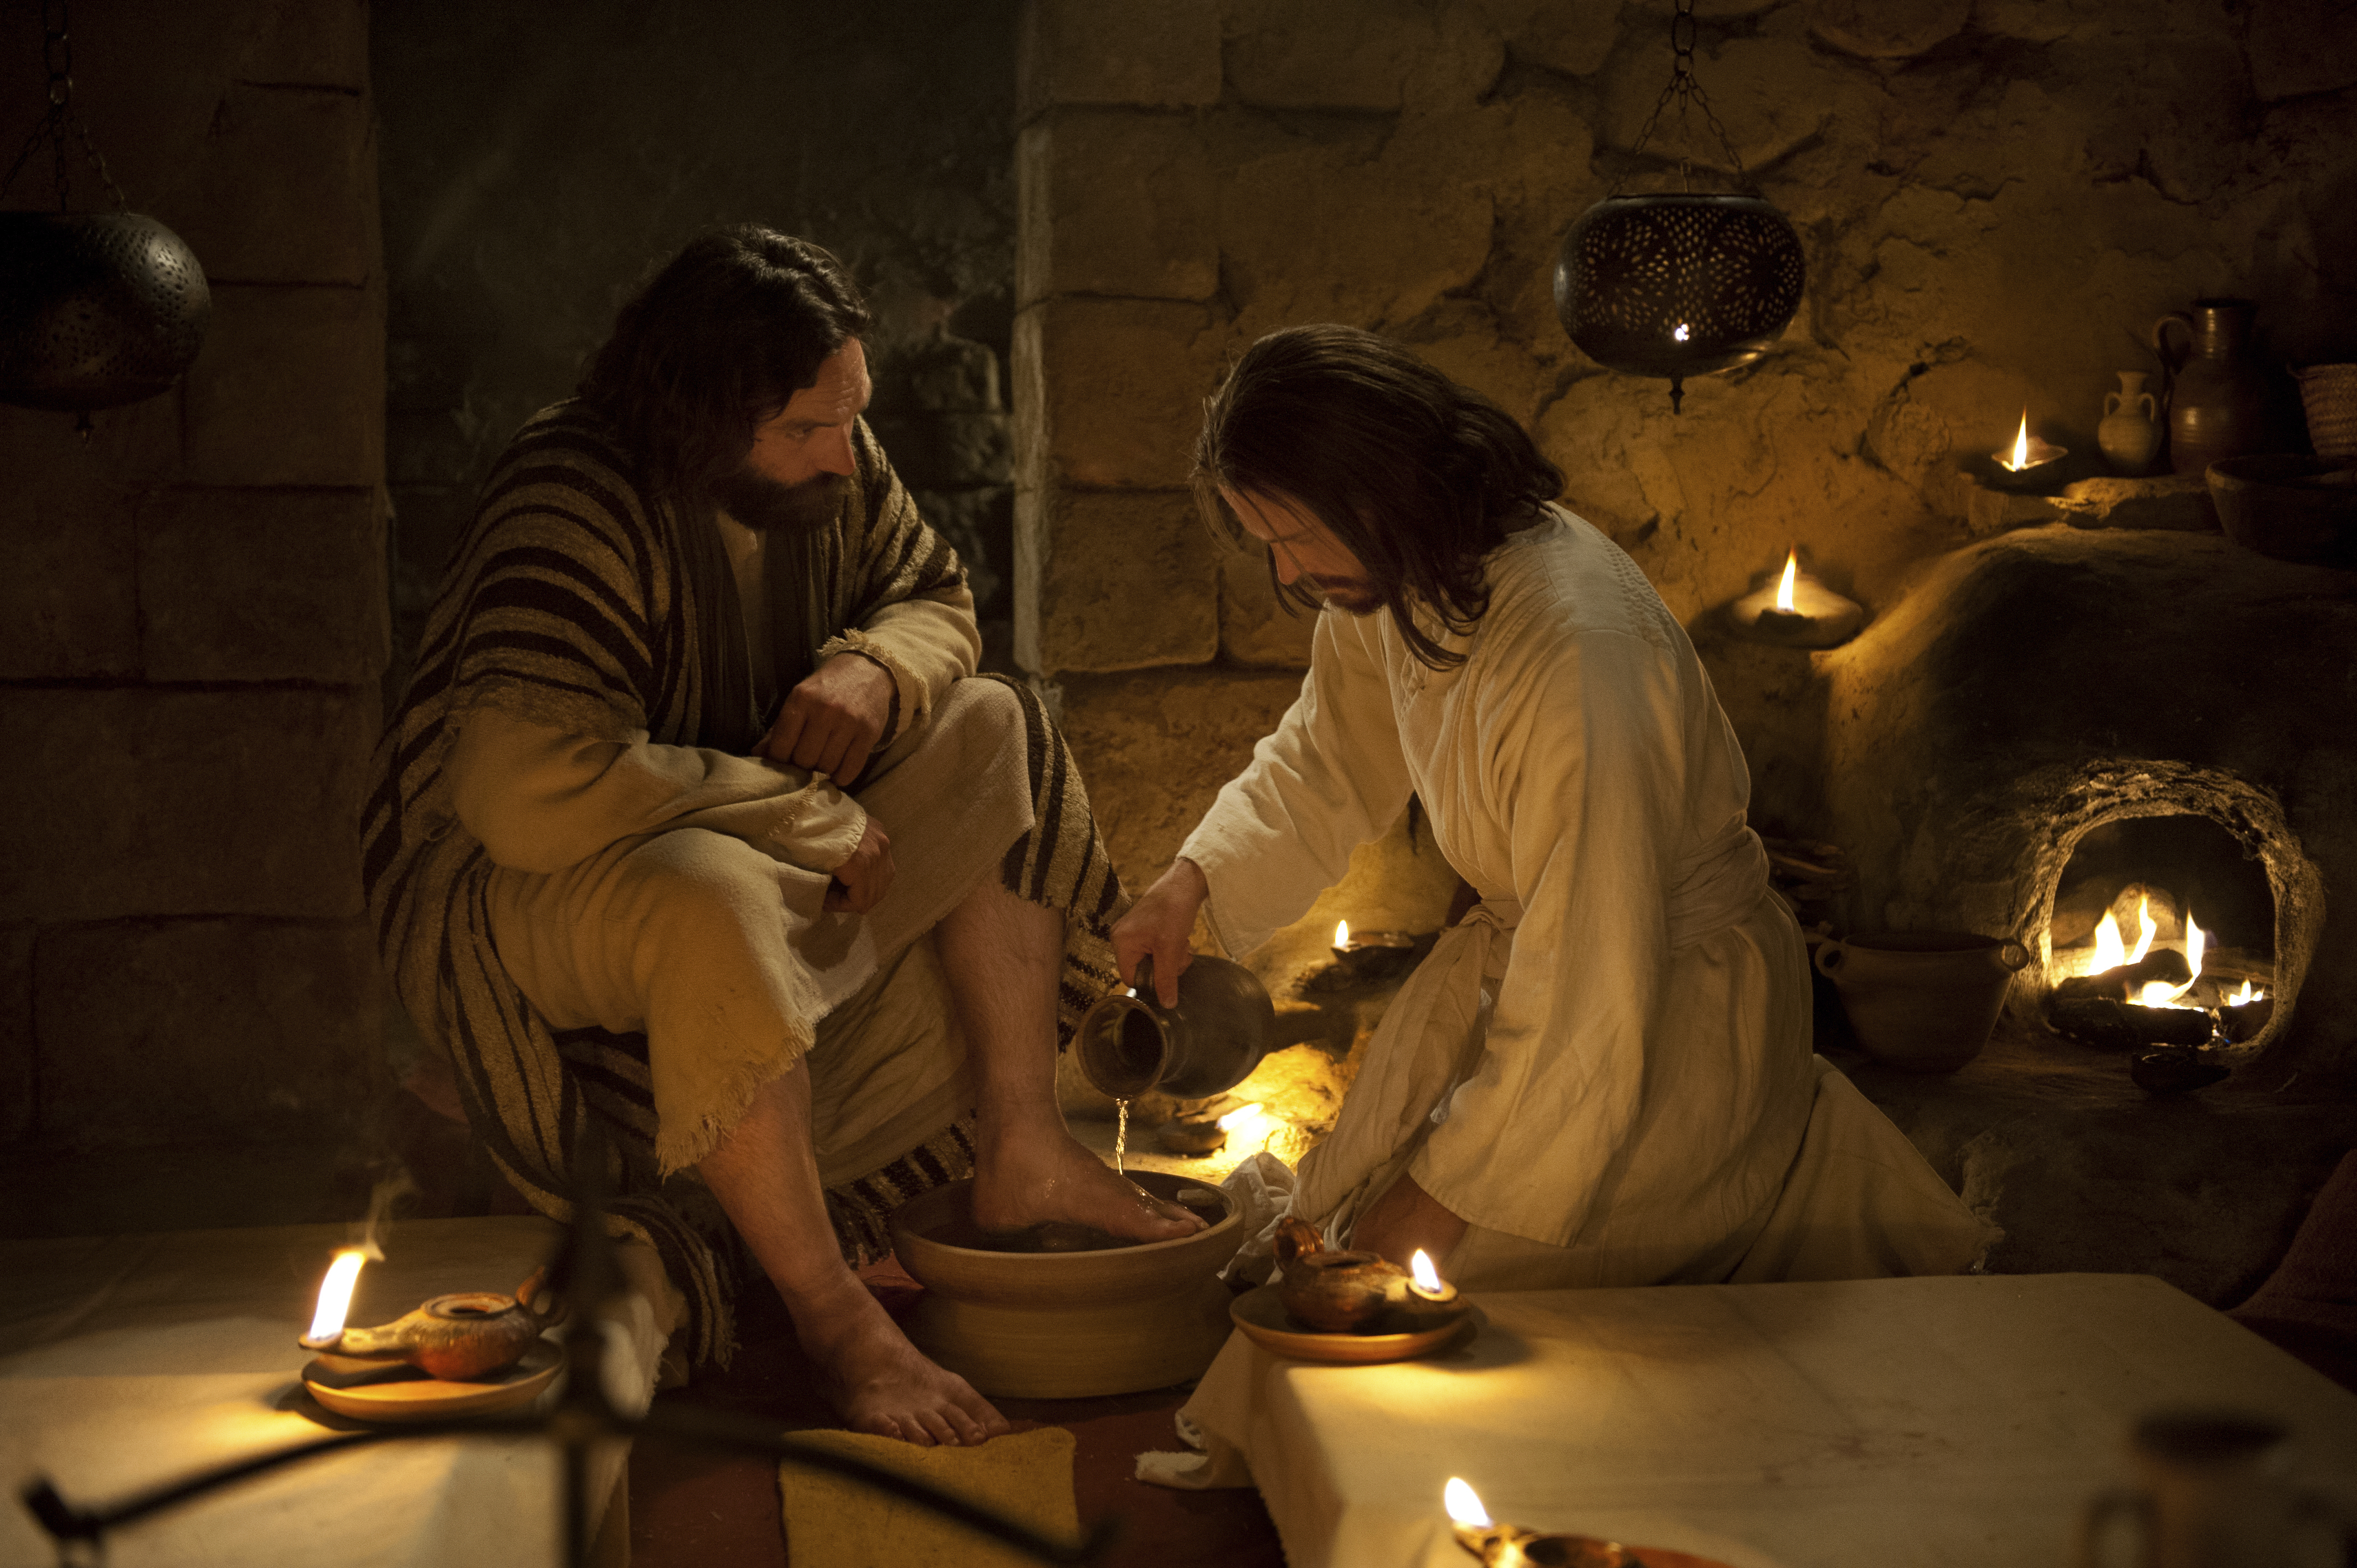 Jesus washes Peter's feet while at the Last Supper with the Apostles.